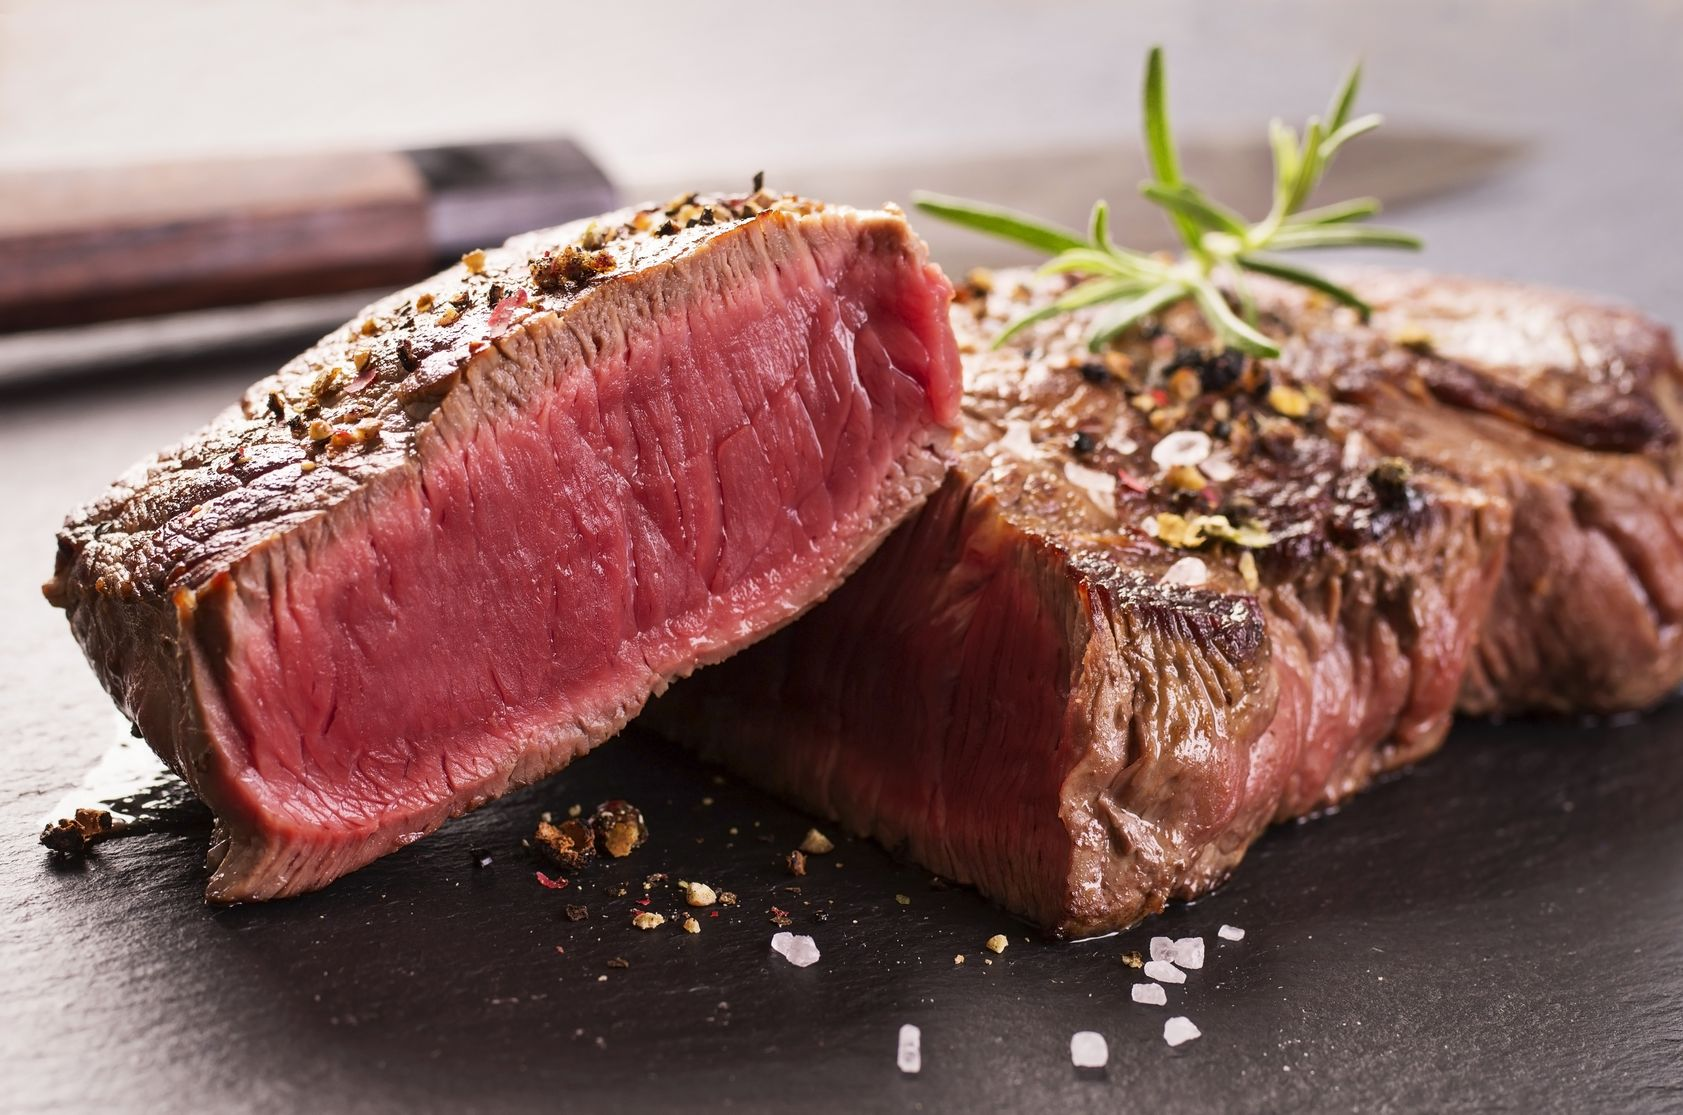 5 Health Benefits Of Eating Red Meat